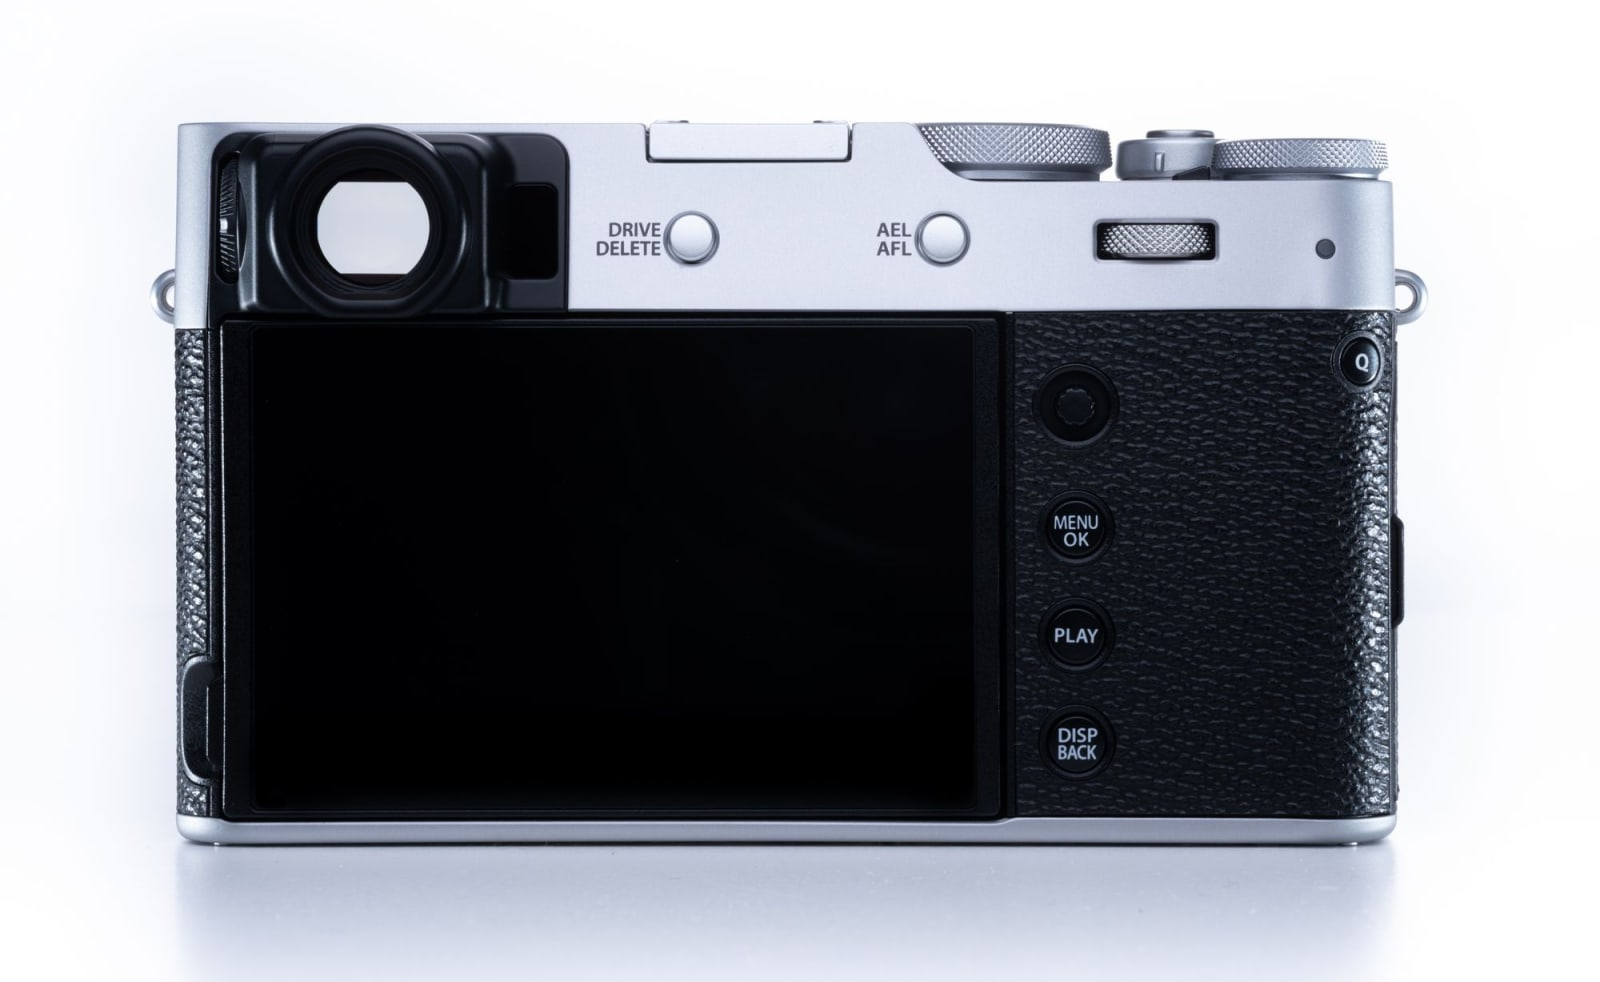 Fujifilm X100V compact fixed-lens APS-C camera